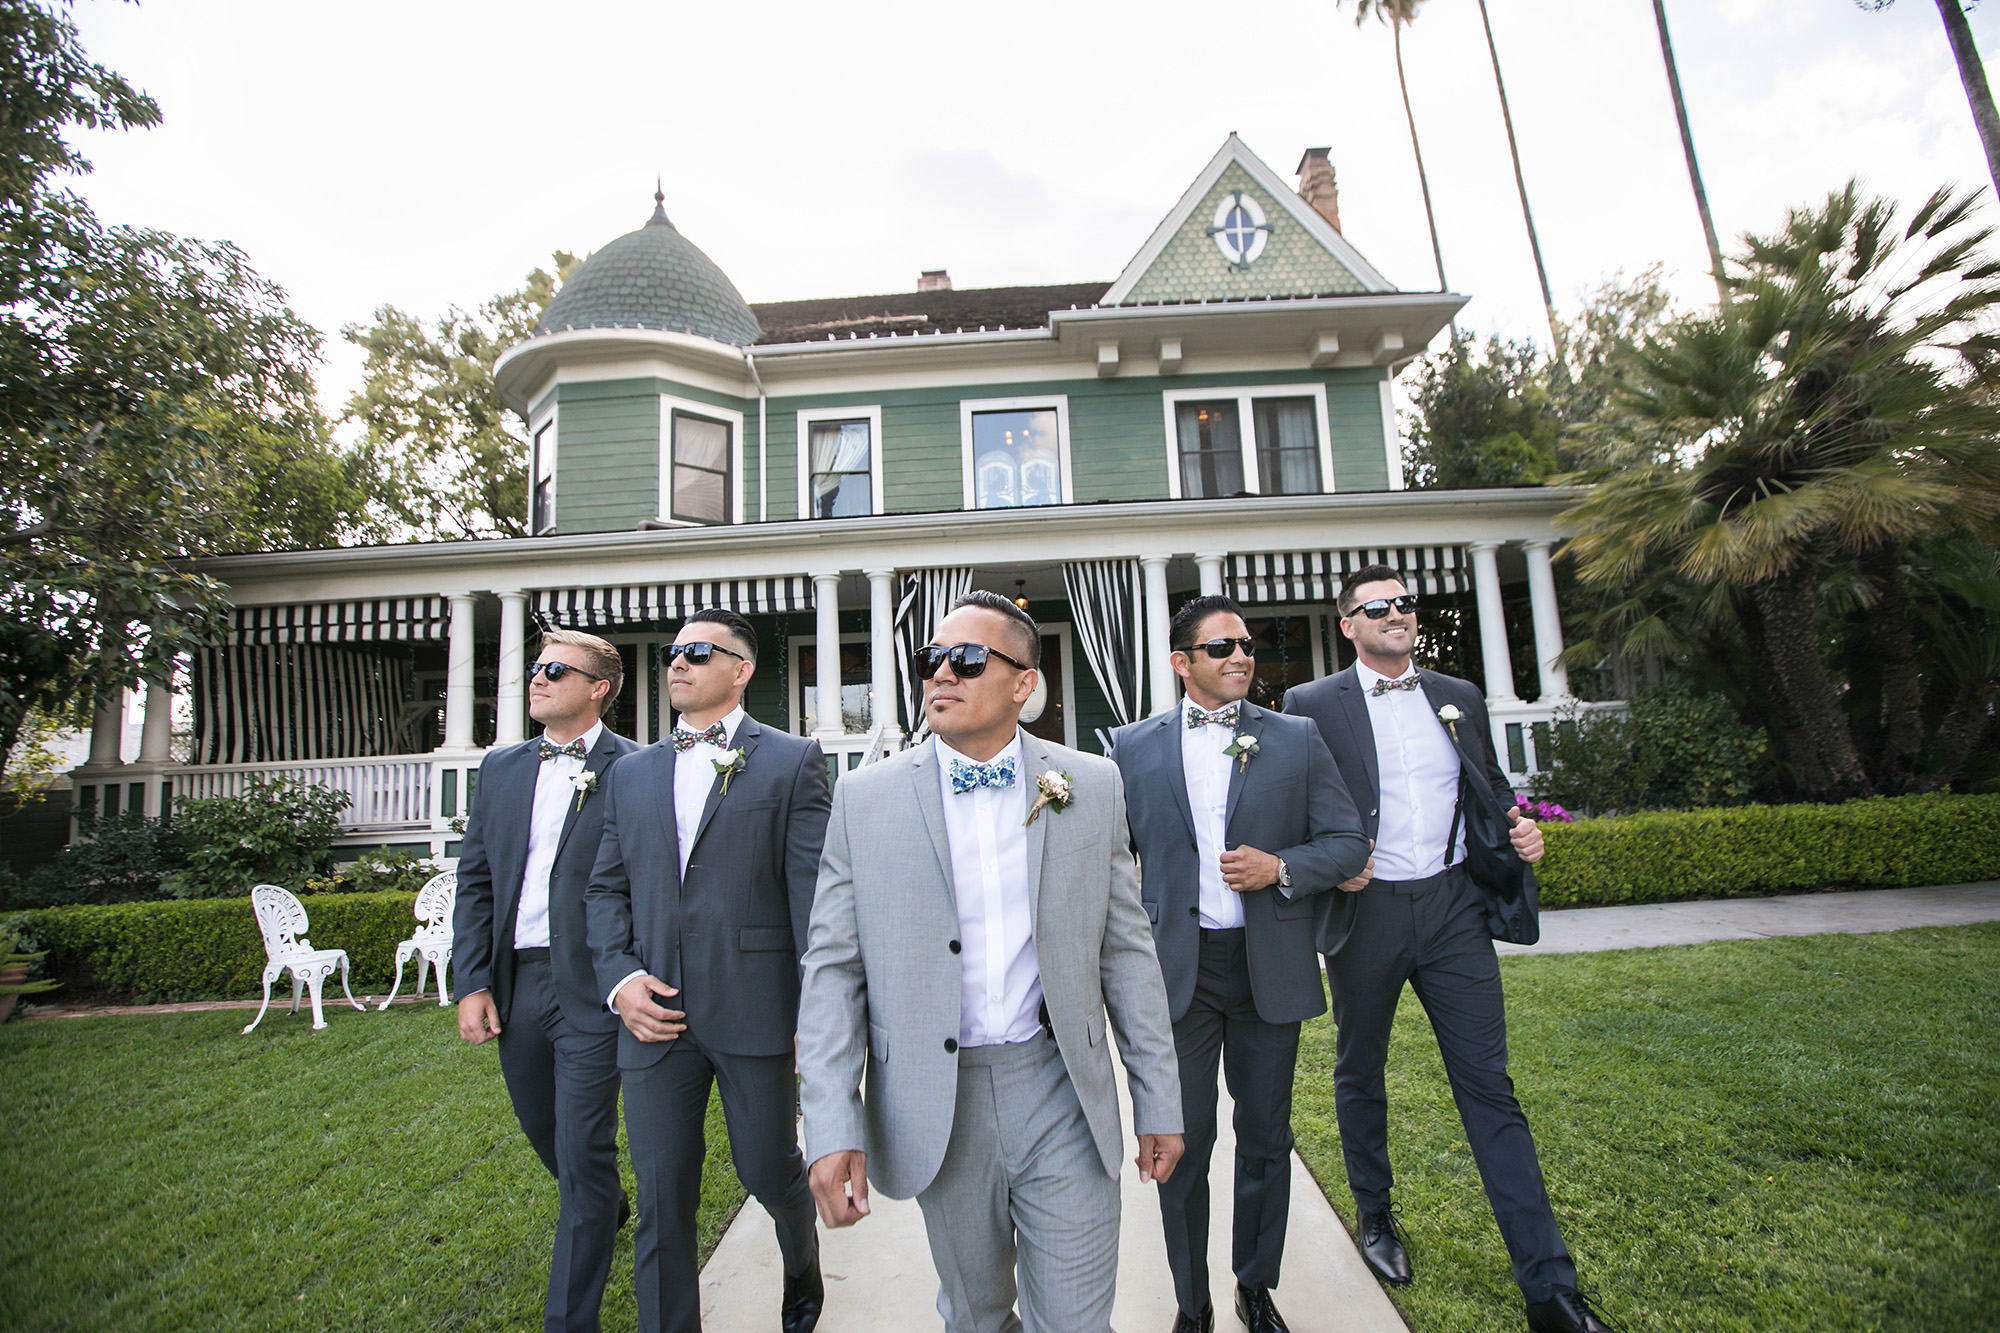 christmas-house-groom-groomsmen-sunglasses-portrait-carrie-vines.jpg